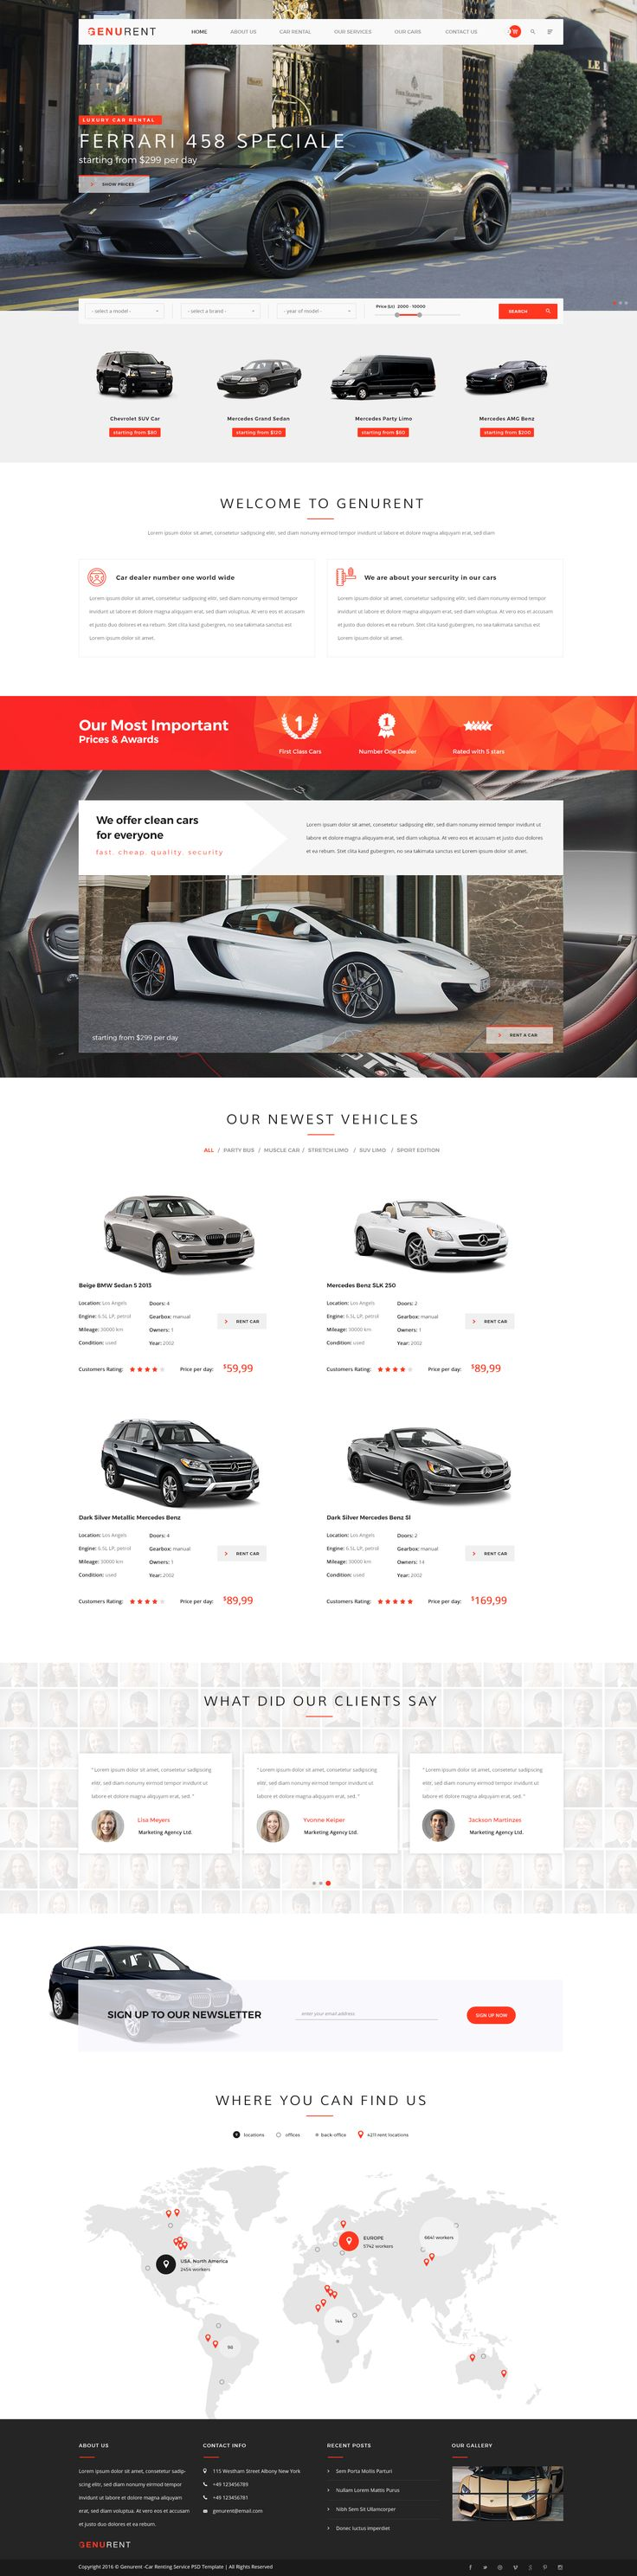 Genurent car rental service psd template auto sitecar